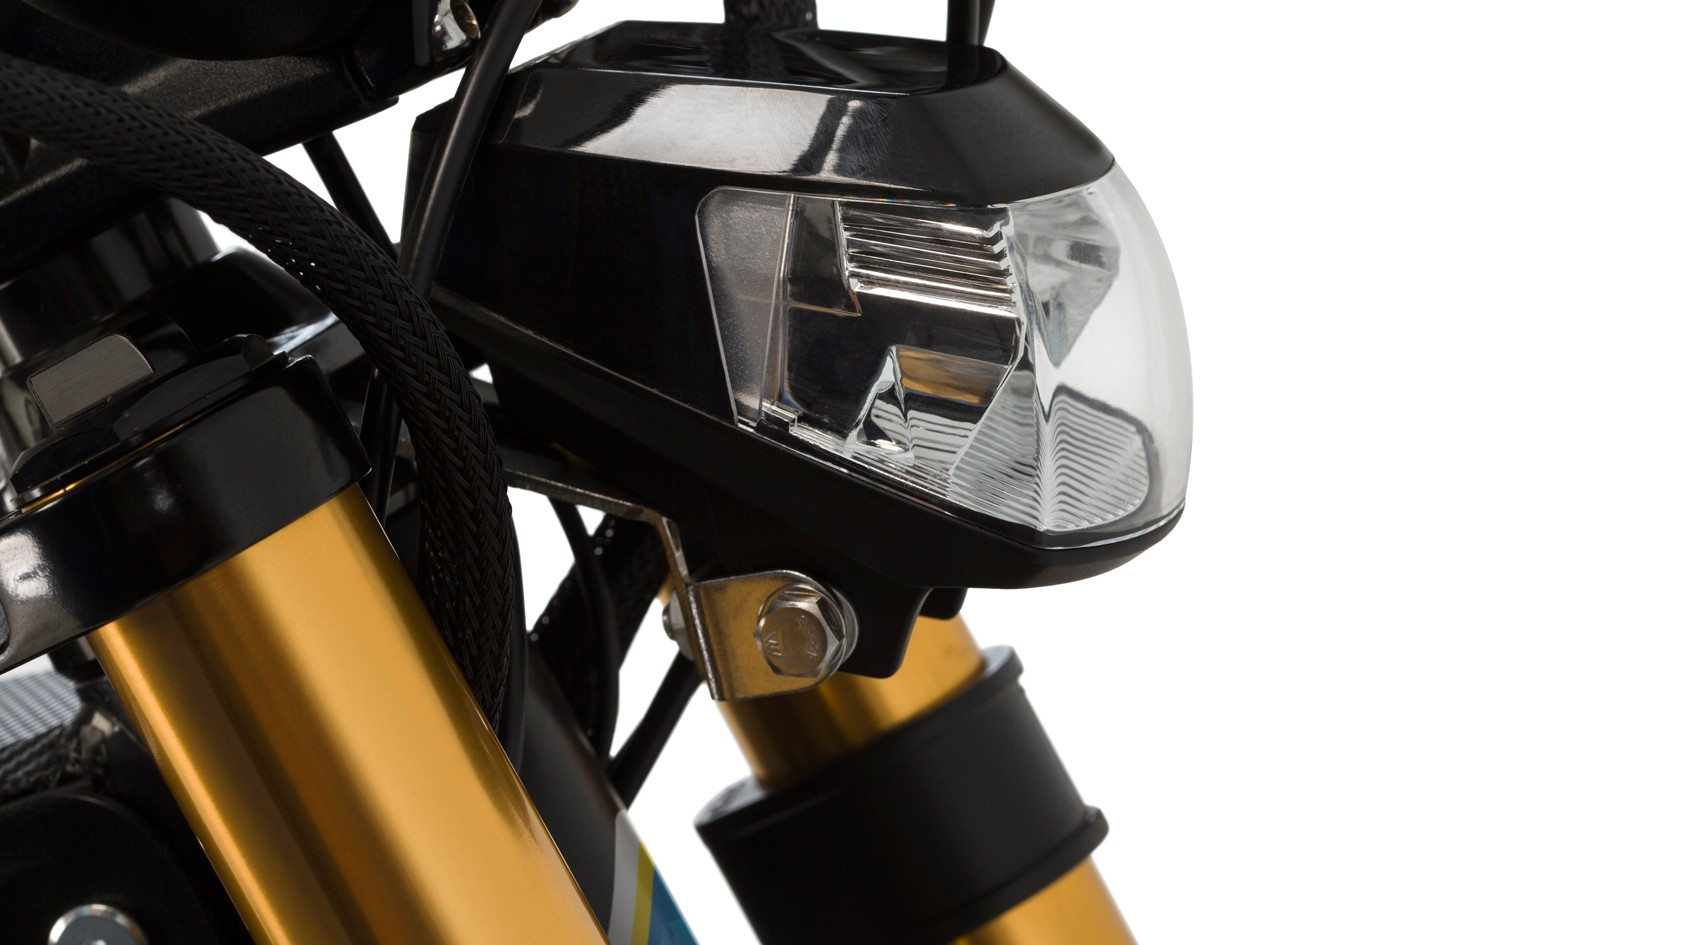 Lights are included with a taillight, blinkers mounted on the mirrors, and this very moto-looking headlight